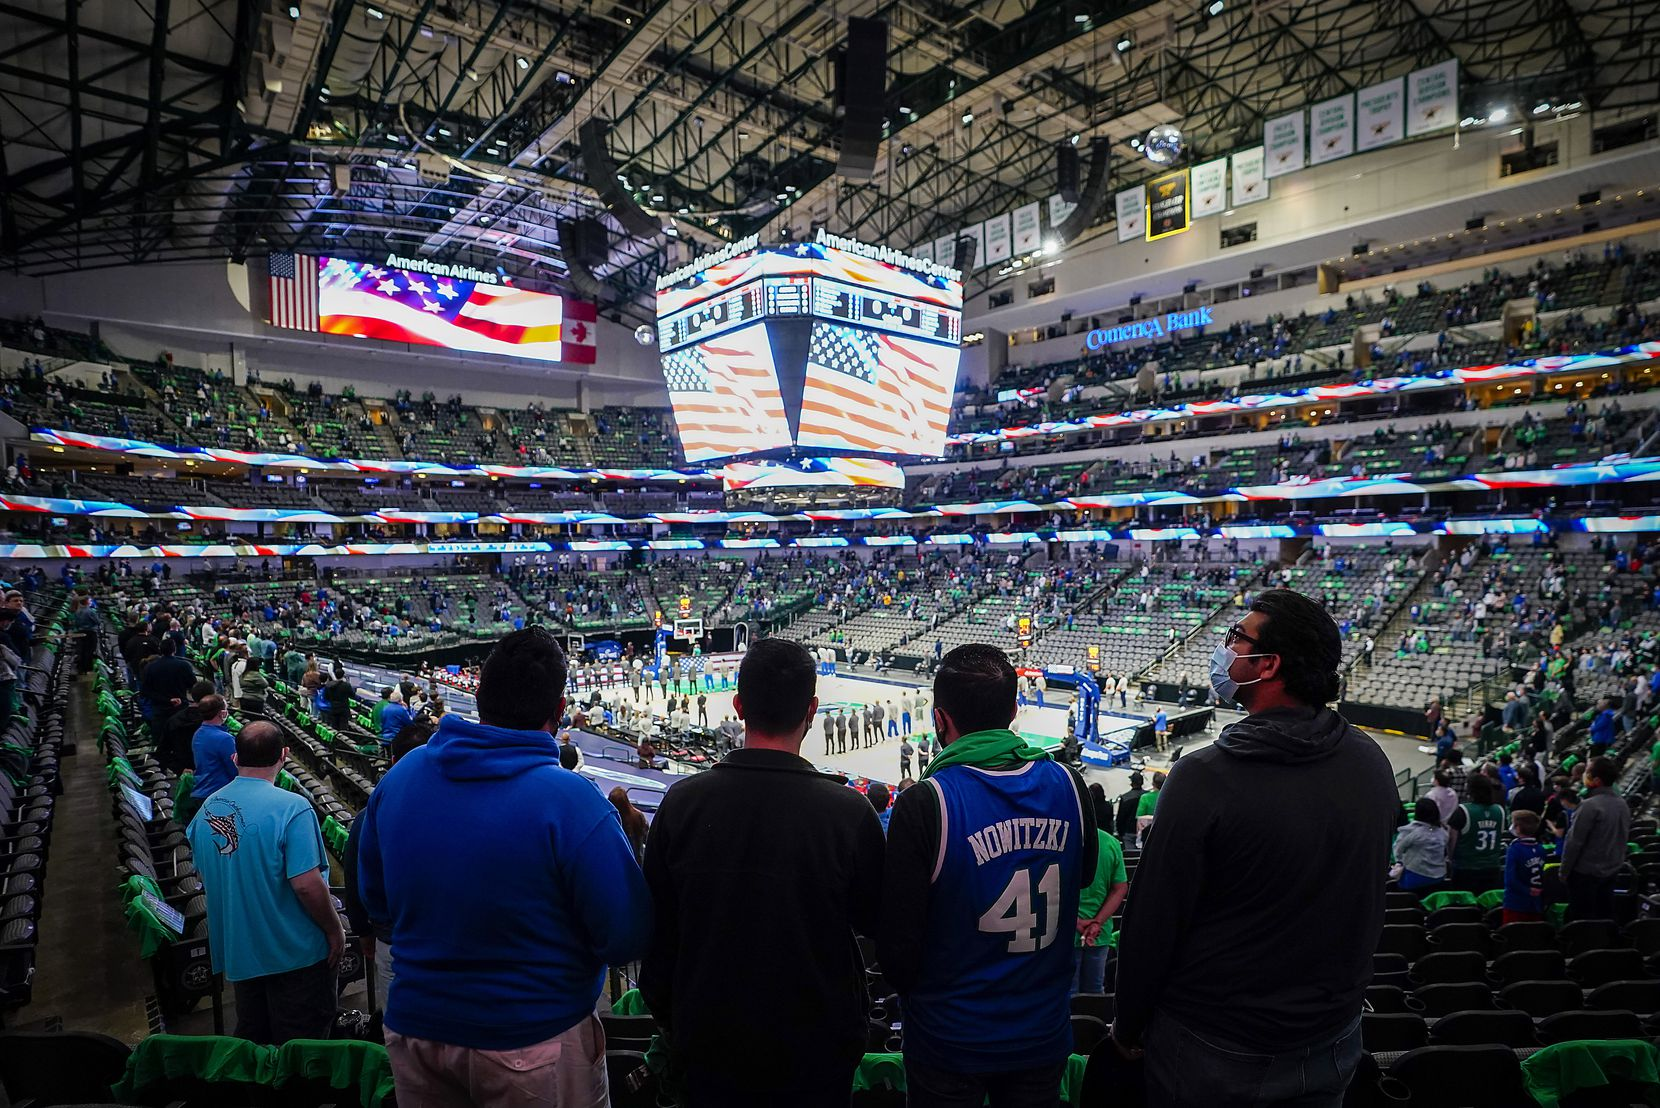 Dallas Mavericks fans stand for the national anthem before an NBA basketball game against the LA Clippers at American Airlines Center on Wednesday, March 17, 2021, in Dallas.